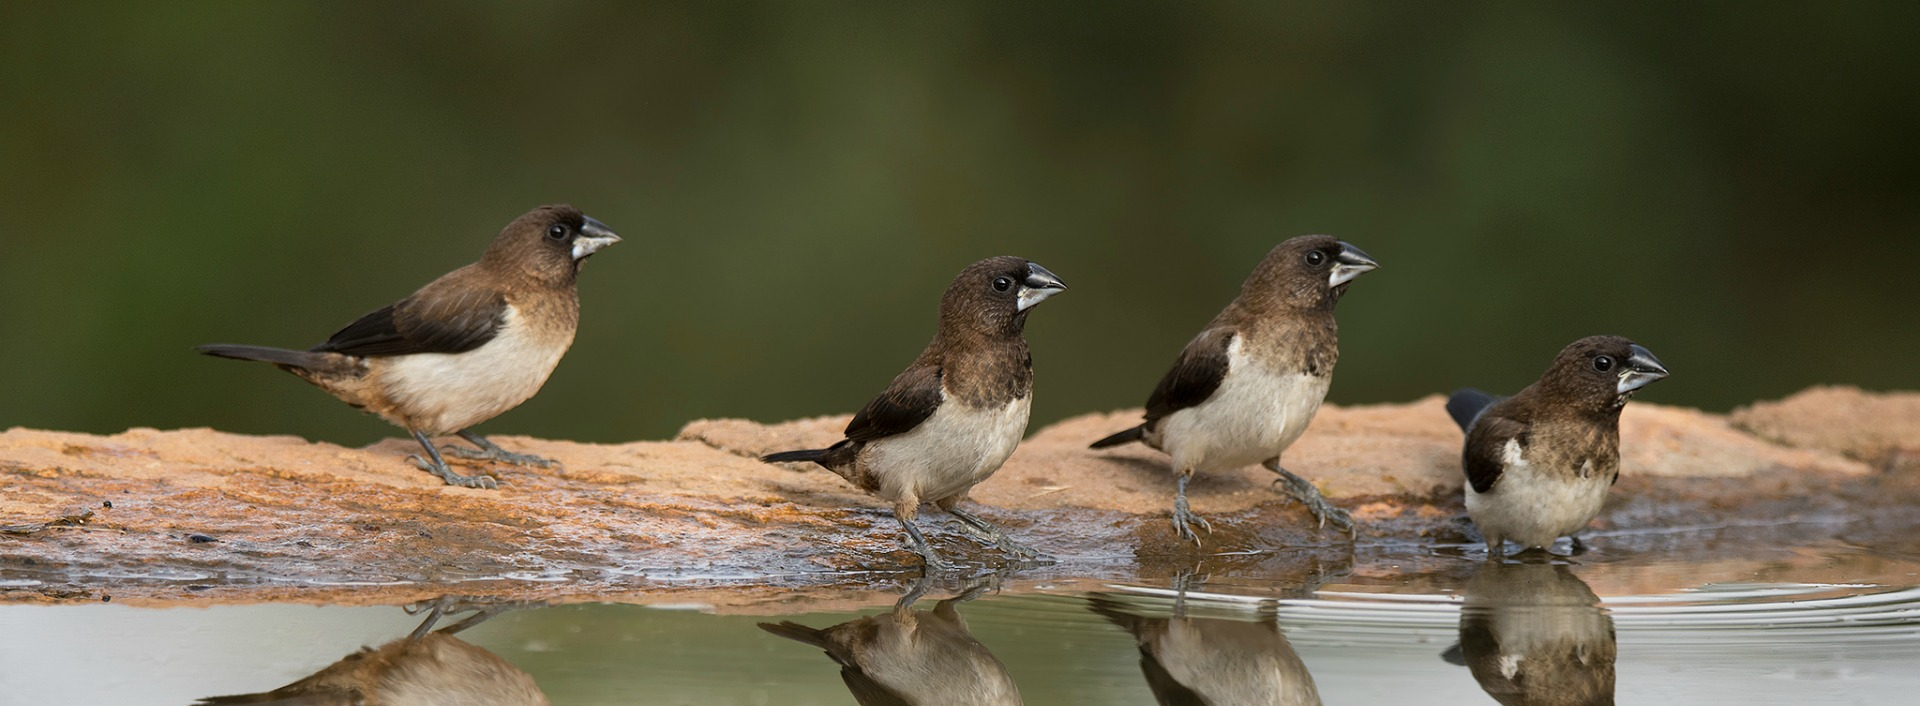 English Proverb: Birds of a feather flock together. Several birds sitting together on a log on a lake.